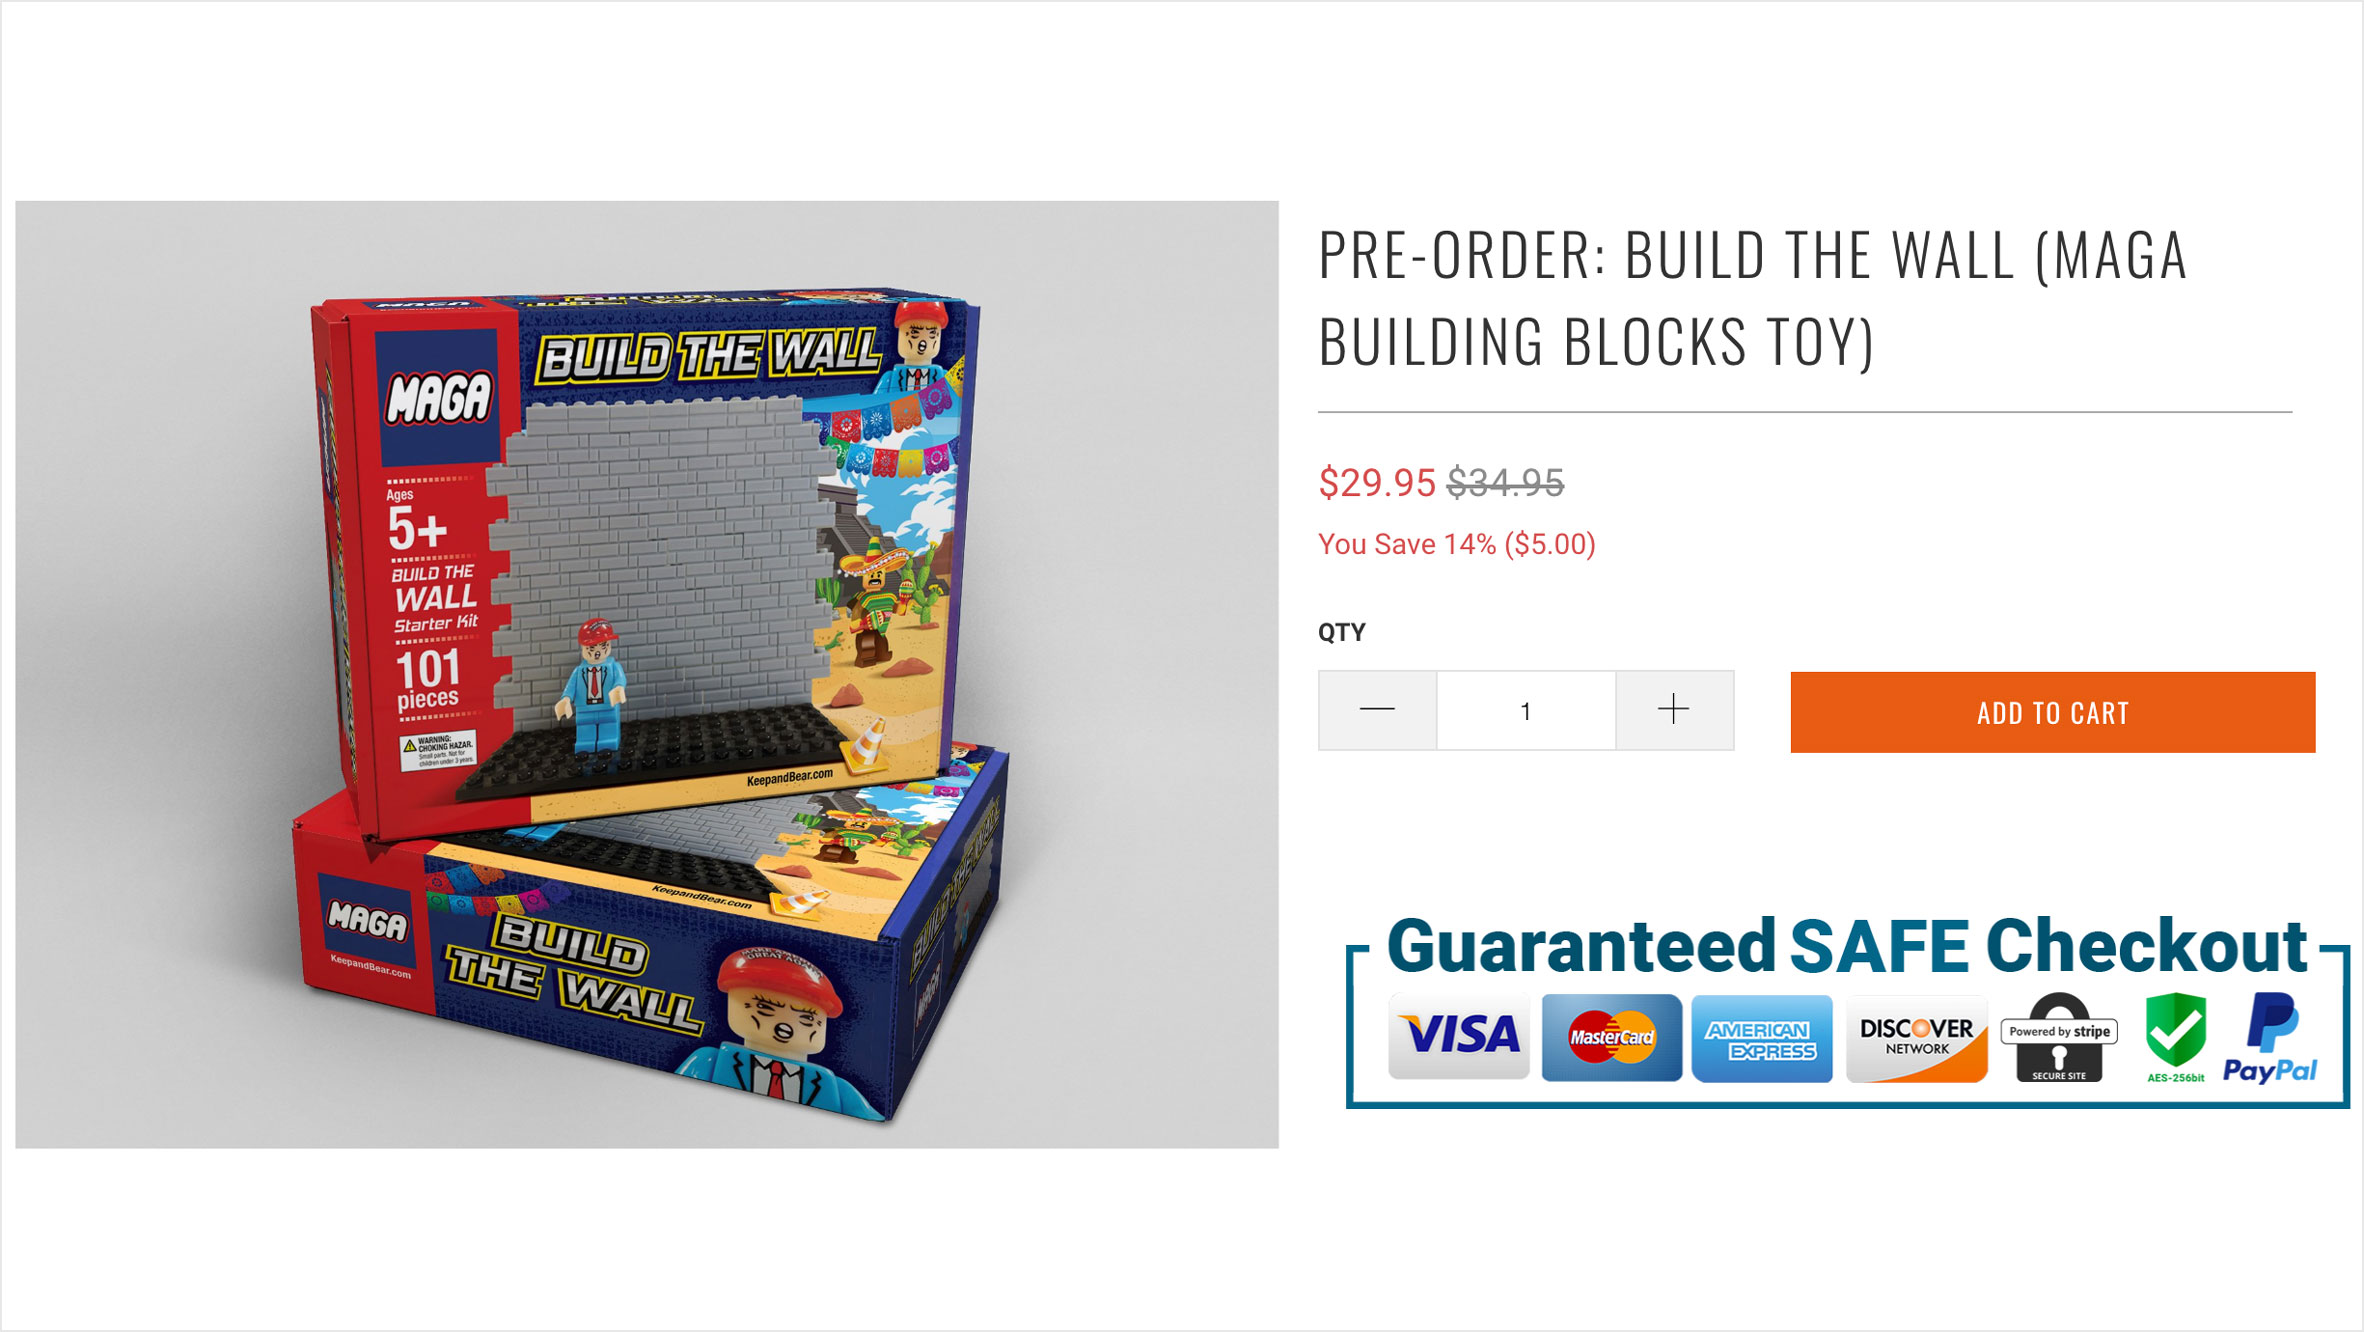 MAGA Building Blocks encourage children to construct toy border wall